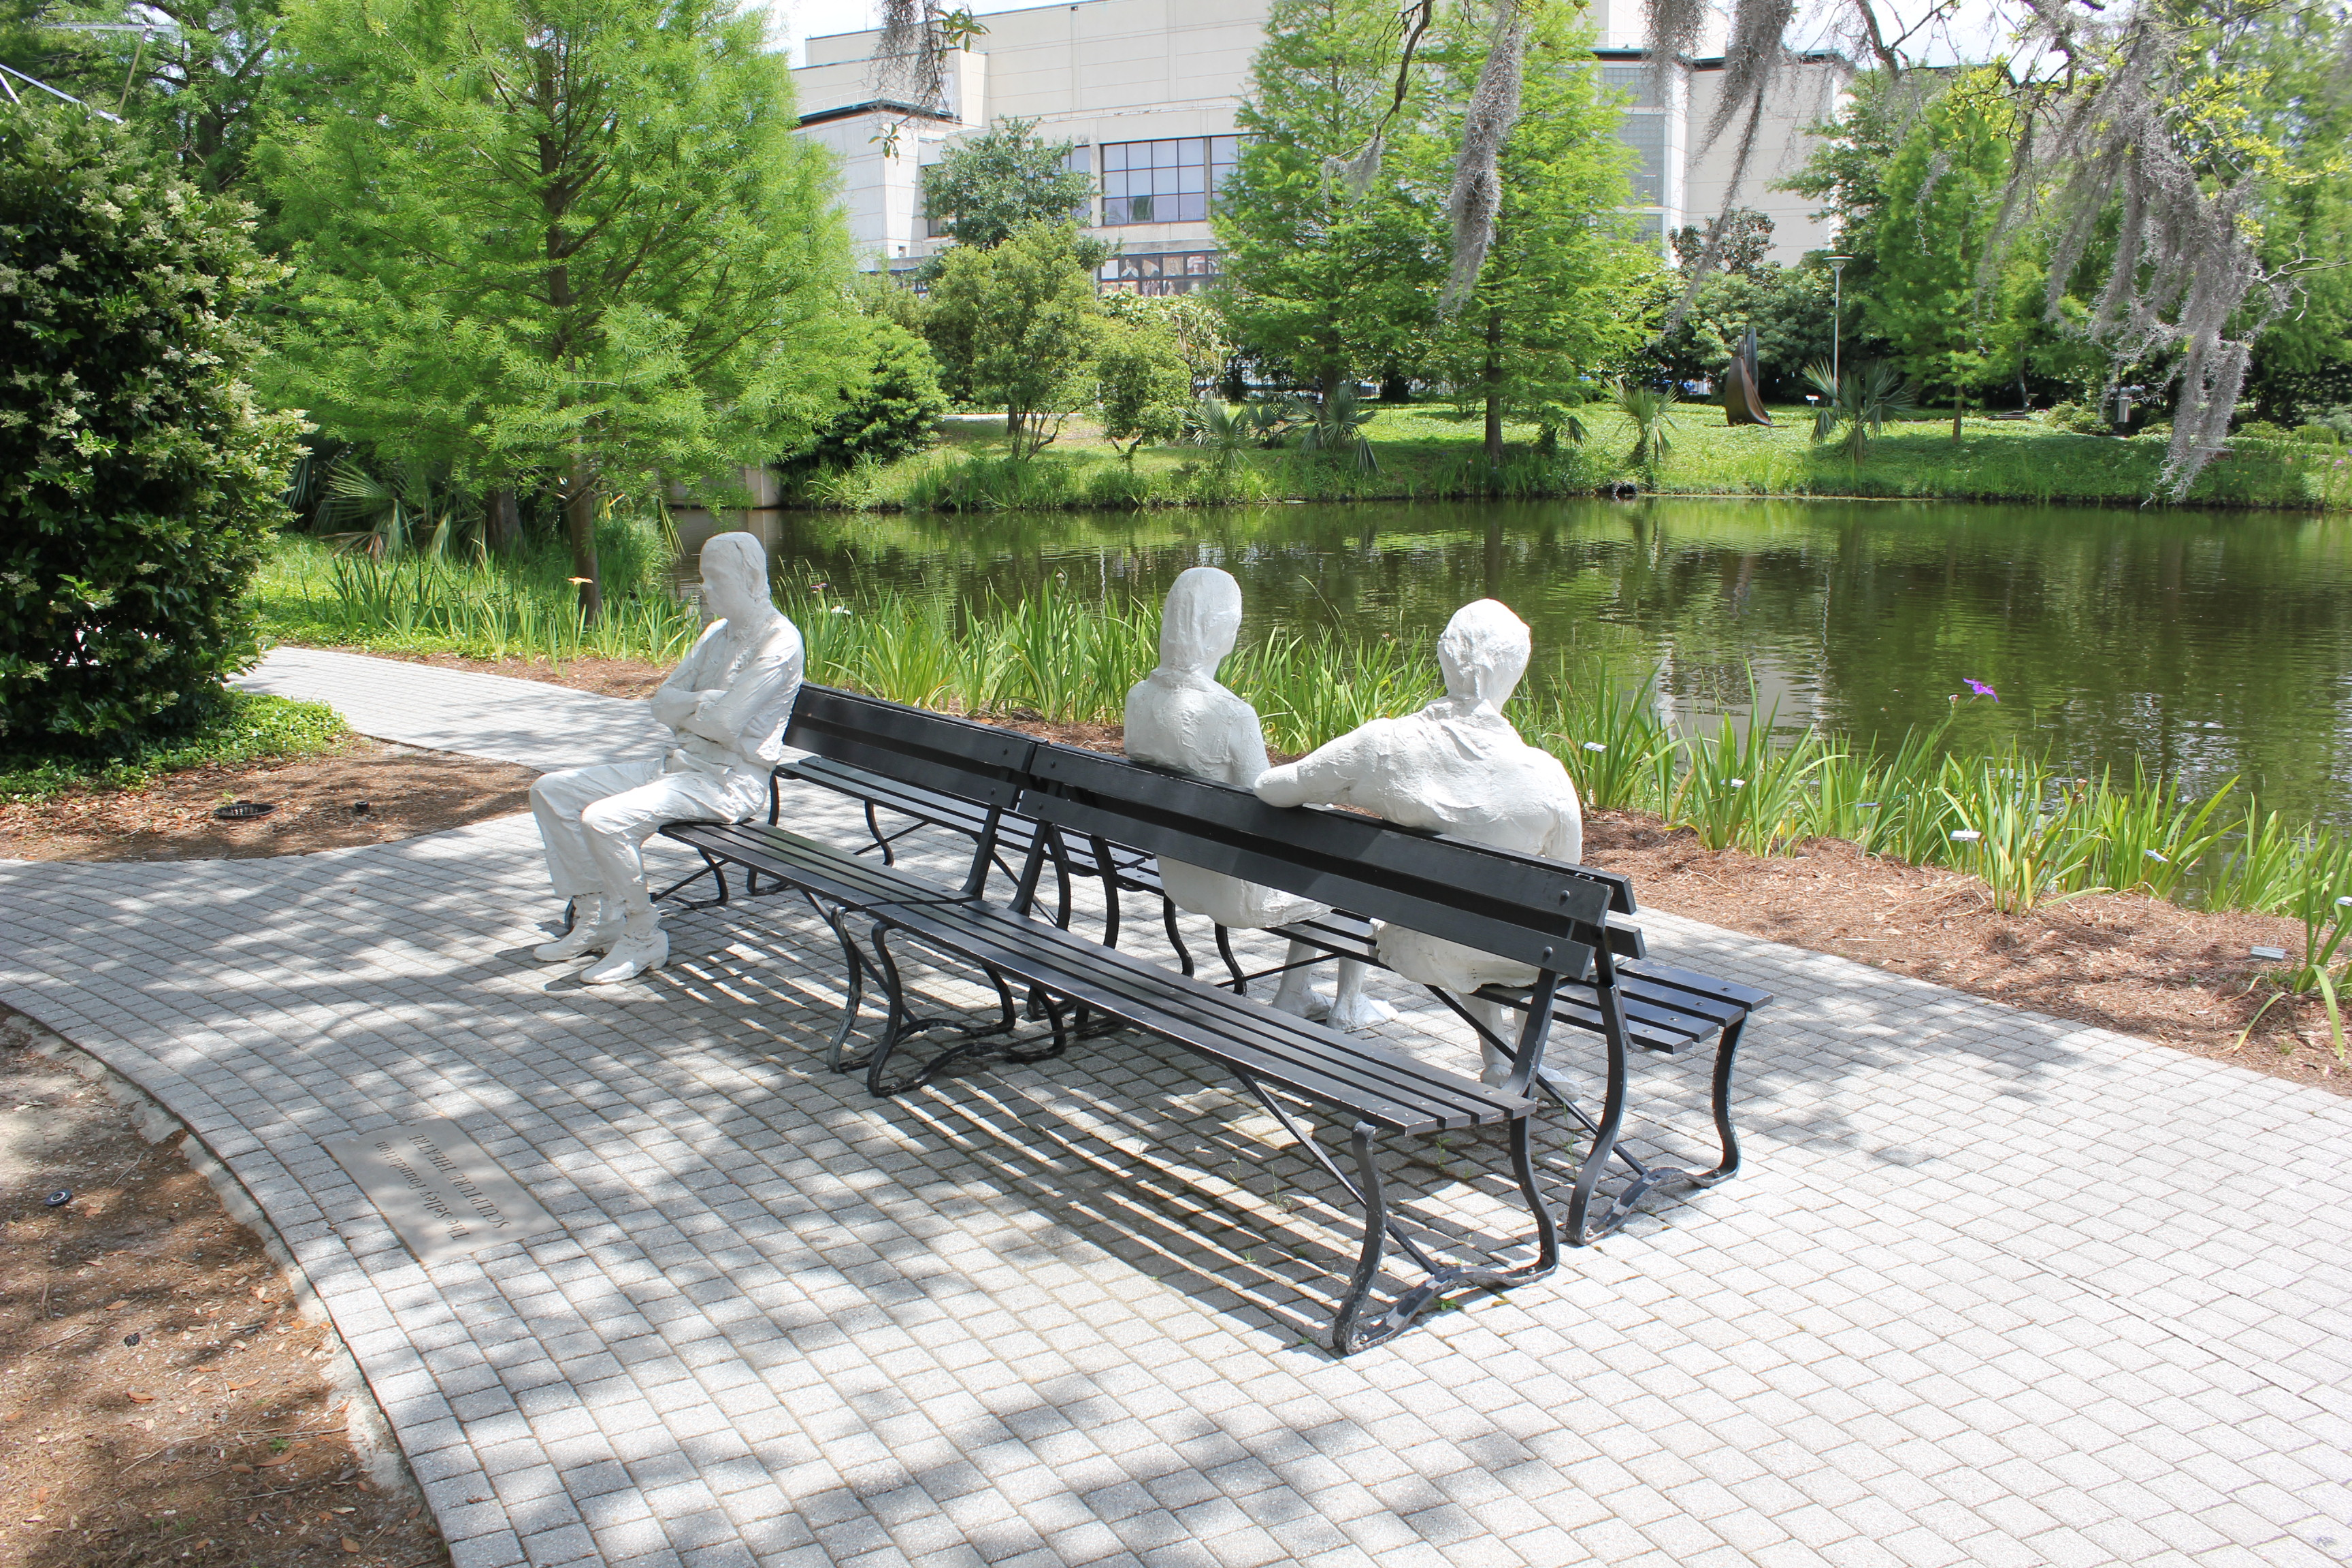 Statues sit on Bench at New Orleans Museum of Art and Sculpture ...